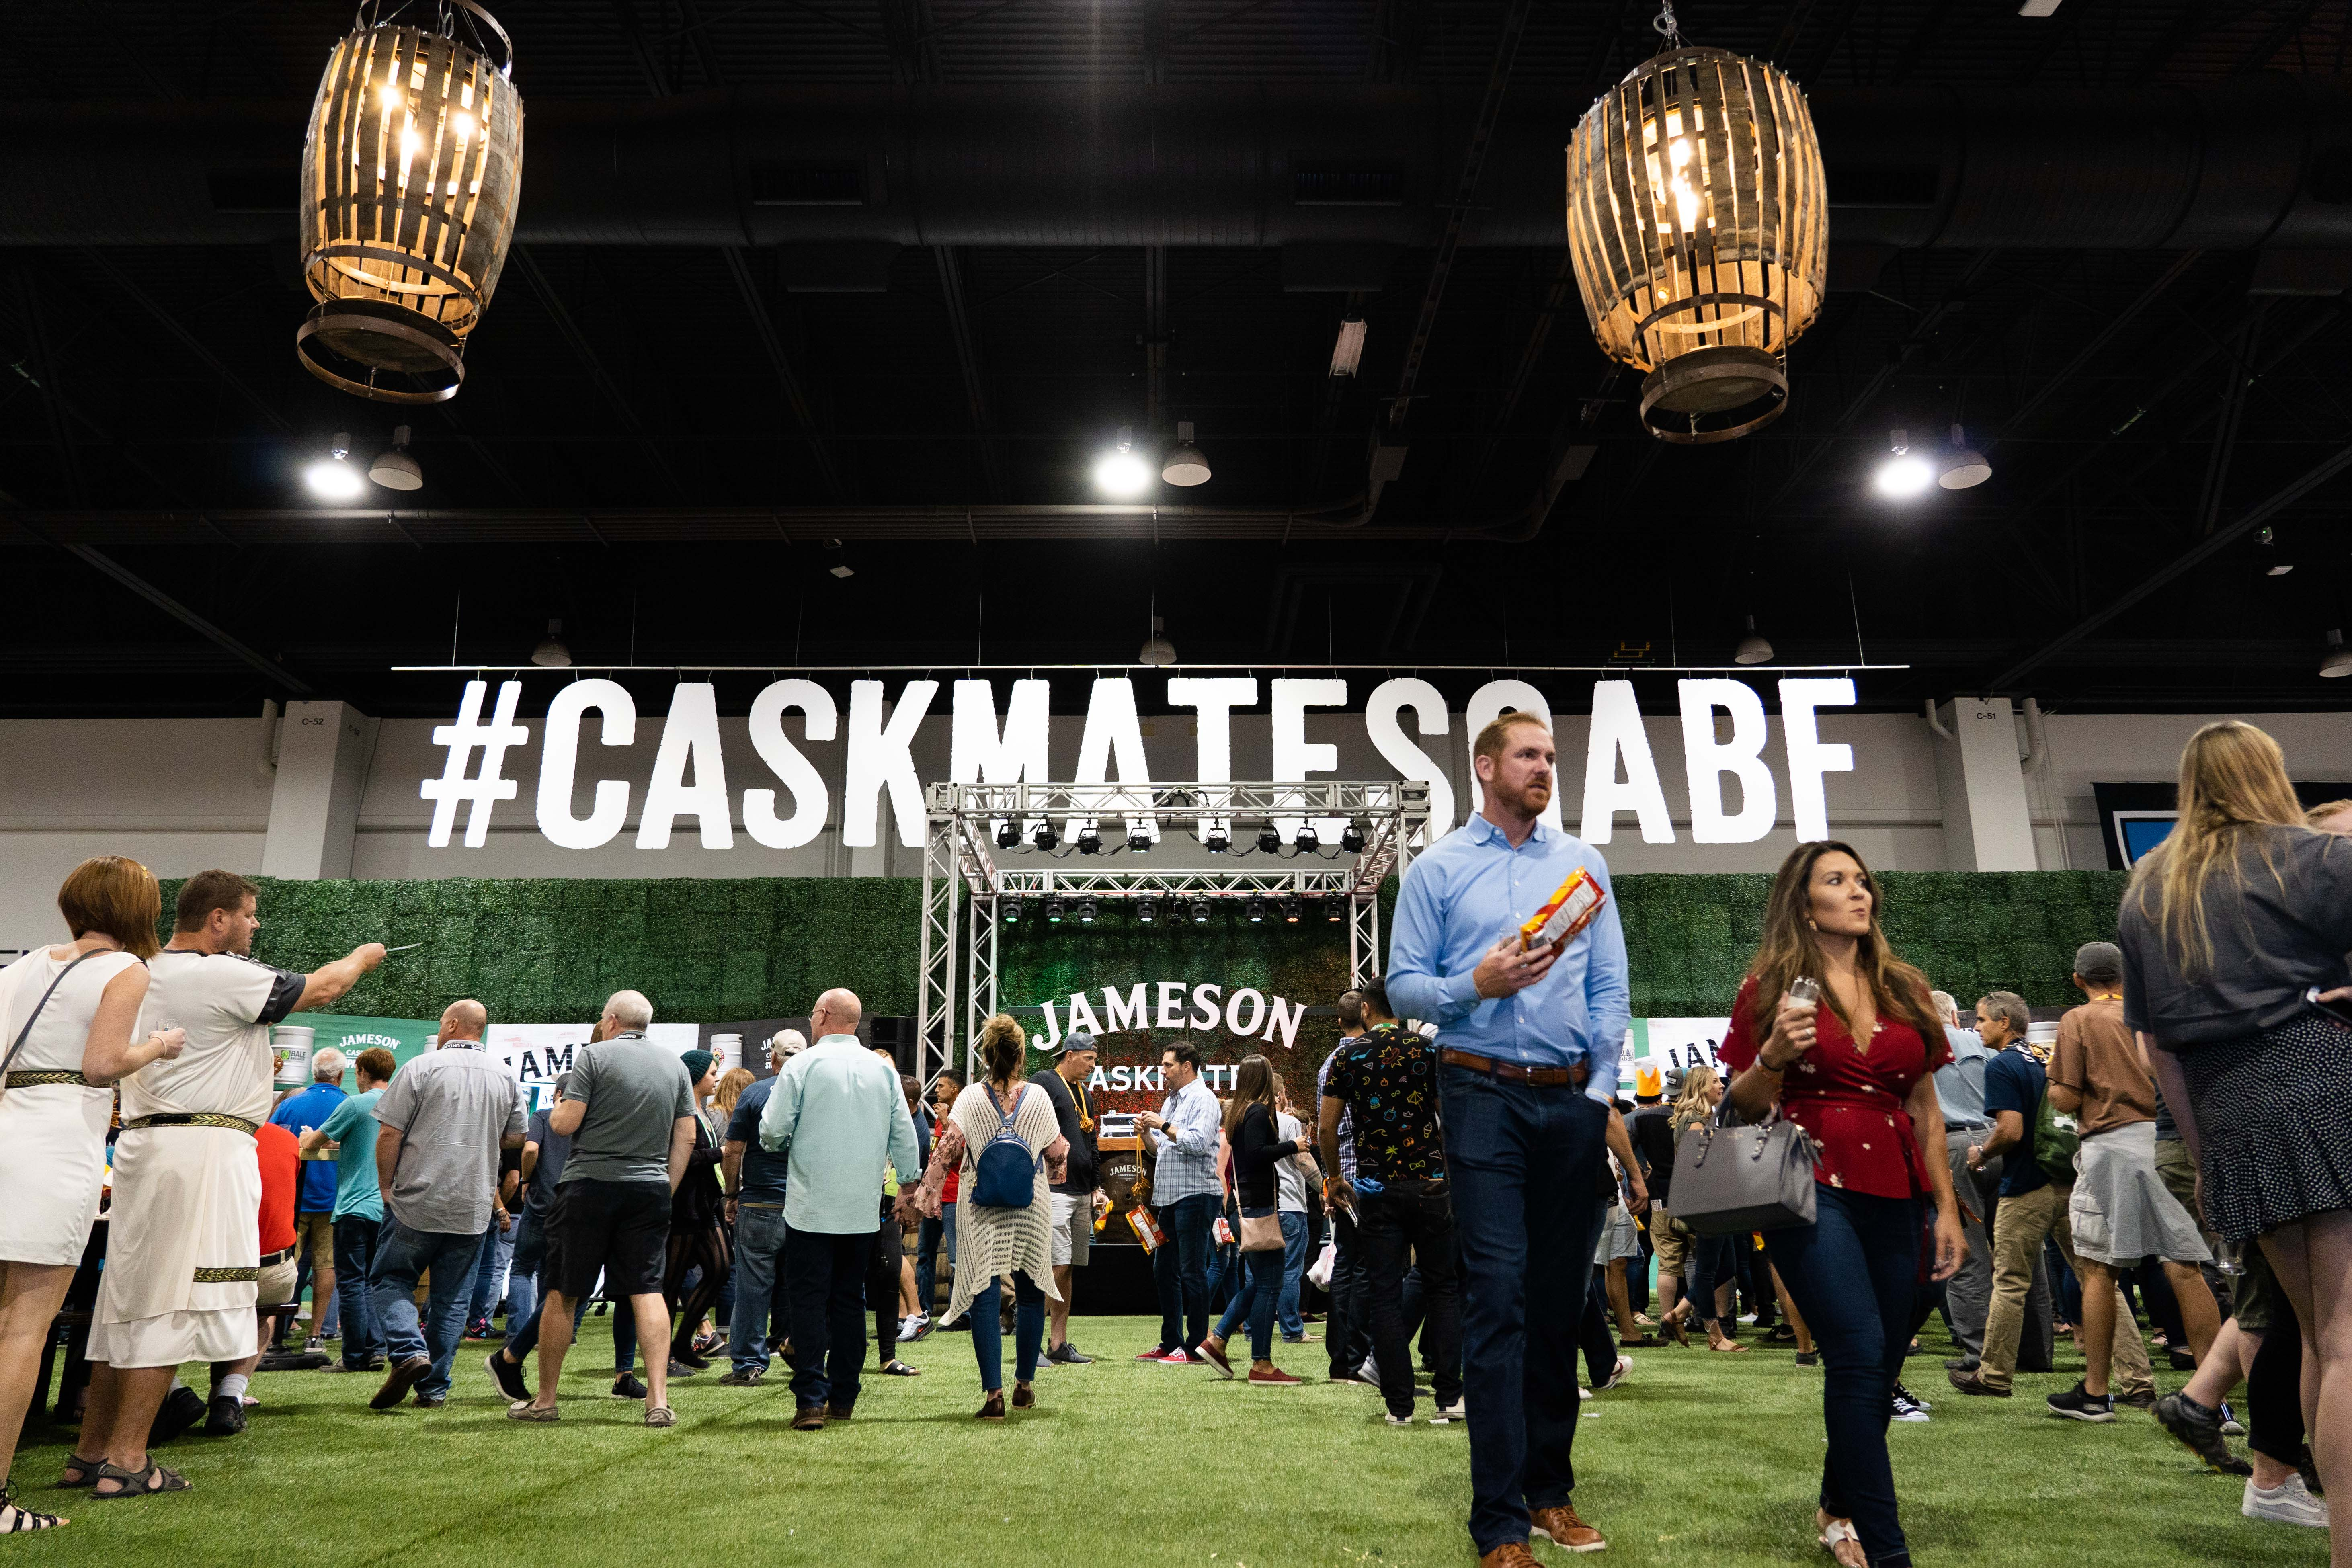 Craft Beer, 303 Magazine, Great American Beer Festival, GABF 2018, GABF, Denver, Hazy IPAs, Stouts, Spontaneous Beers, GABF Gets Bigger But Stays True To Its Roots, Trends at GABF 2018, Buffalo Wild Wings, Jameson Irish Whiskey, Colorado Convention Center, Photography By Kyle Cooper, Photography By Brittany Werges, Colorado Brewery List, Denver Beer Company, Ska Brewing, Butcherknife Brewing, 105 West Brewing, Banded Oak Brewing, Royal Gold Pretzels, Hop Butcher For The World, Modern Times Brewing, Kane Brewing, Revision Brewing, Great Notion Brewing, Fremont Brewing, Fiction Beer Company, New Glarus Brewing, The Referend Bier Blendery, Loveland Aleworks, WestFax Brewing,